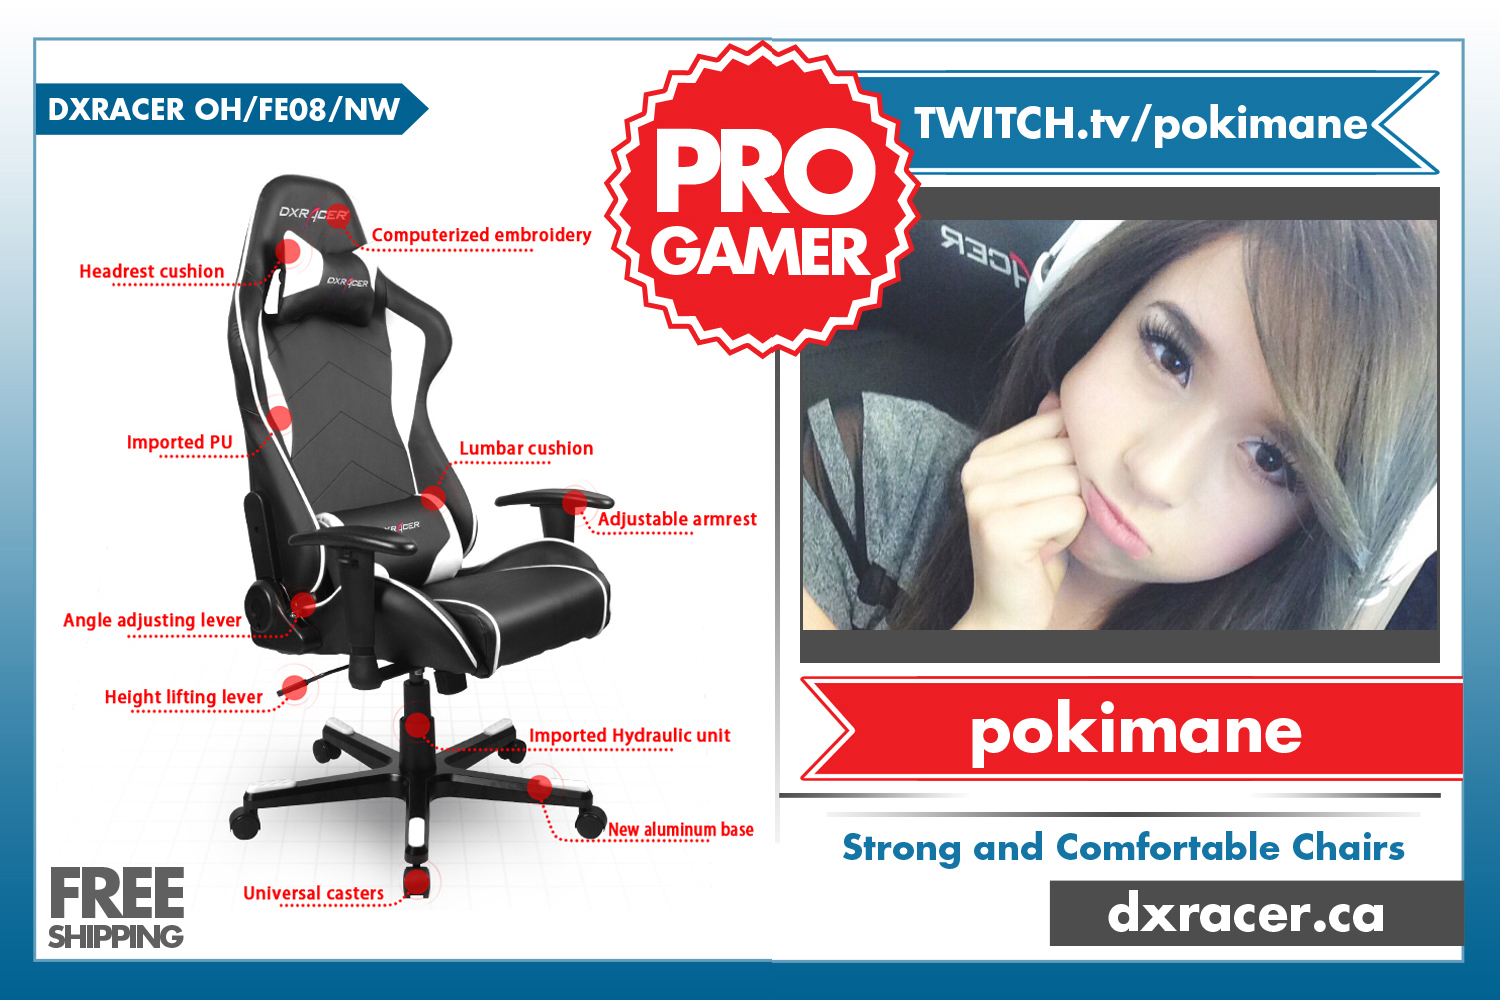 Pro-Gamer-pokimane-Chooses-DXRacer-Canada-OH_FE08_NW-Gaming-Chair.jpg